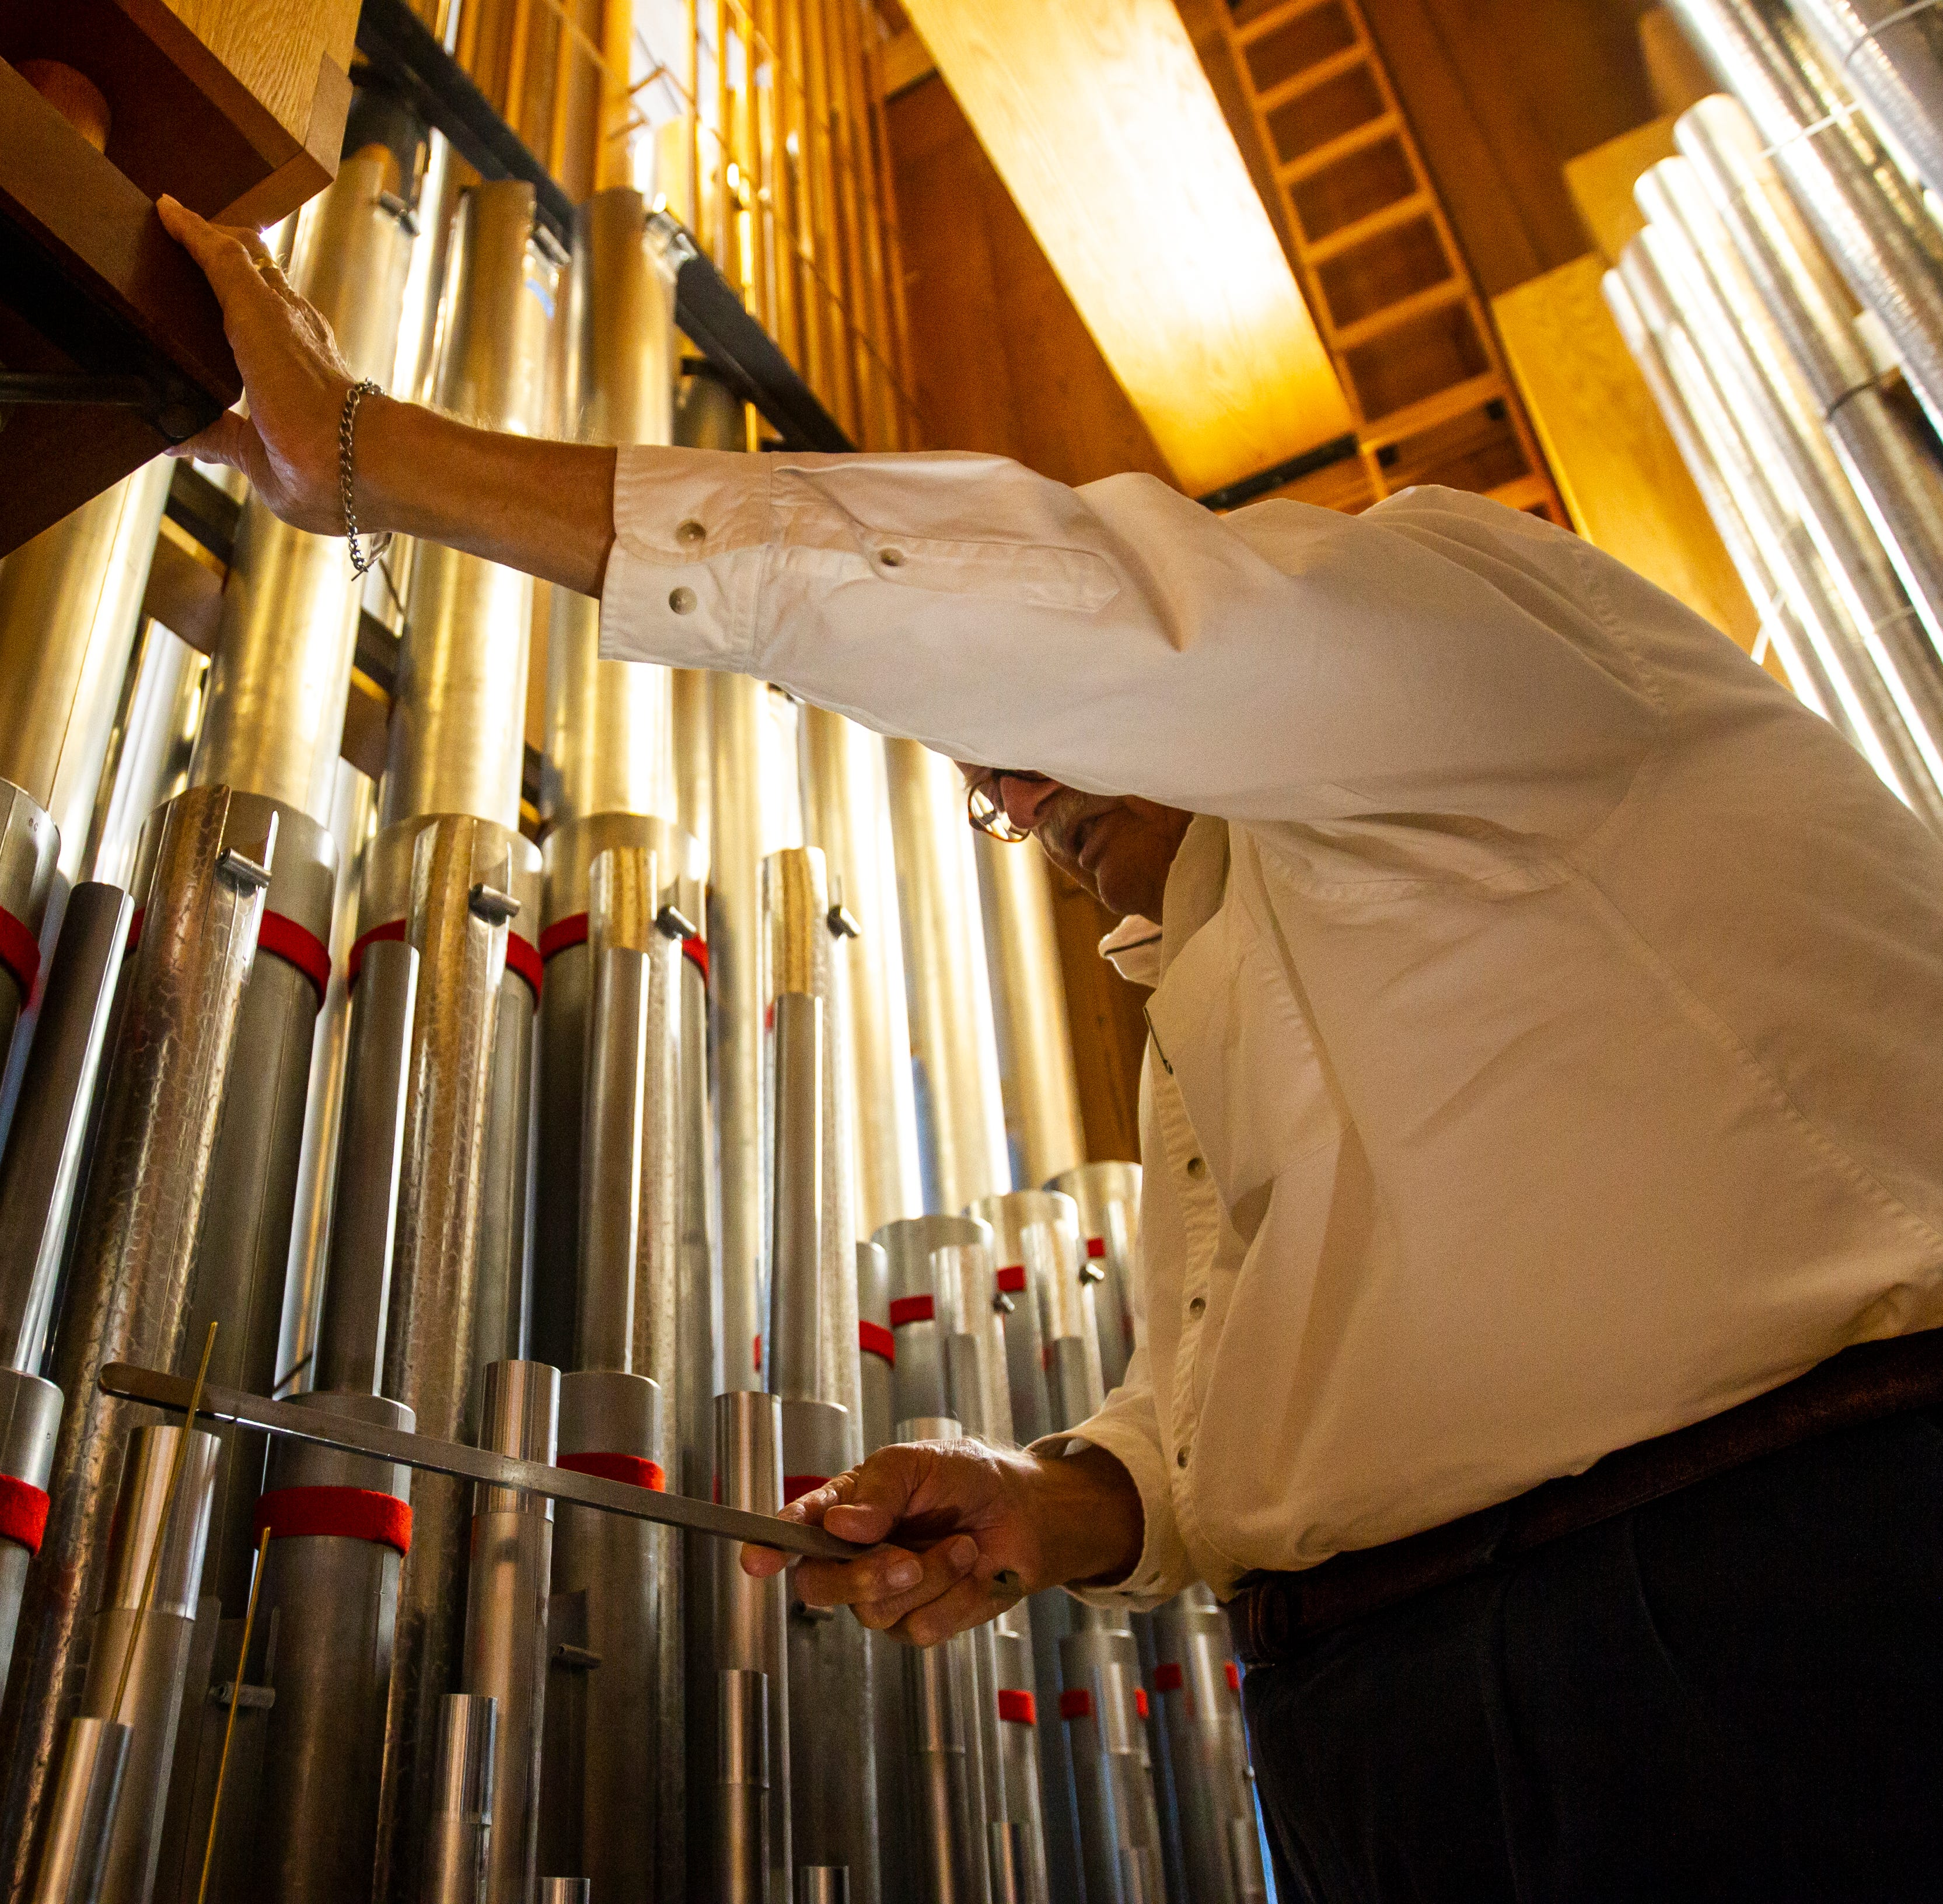 Clapp Recital Hall's organ finds new home at St. Andrew Presbyterian Church